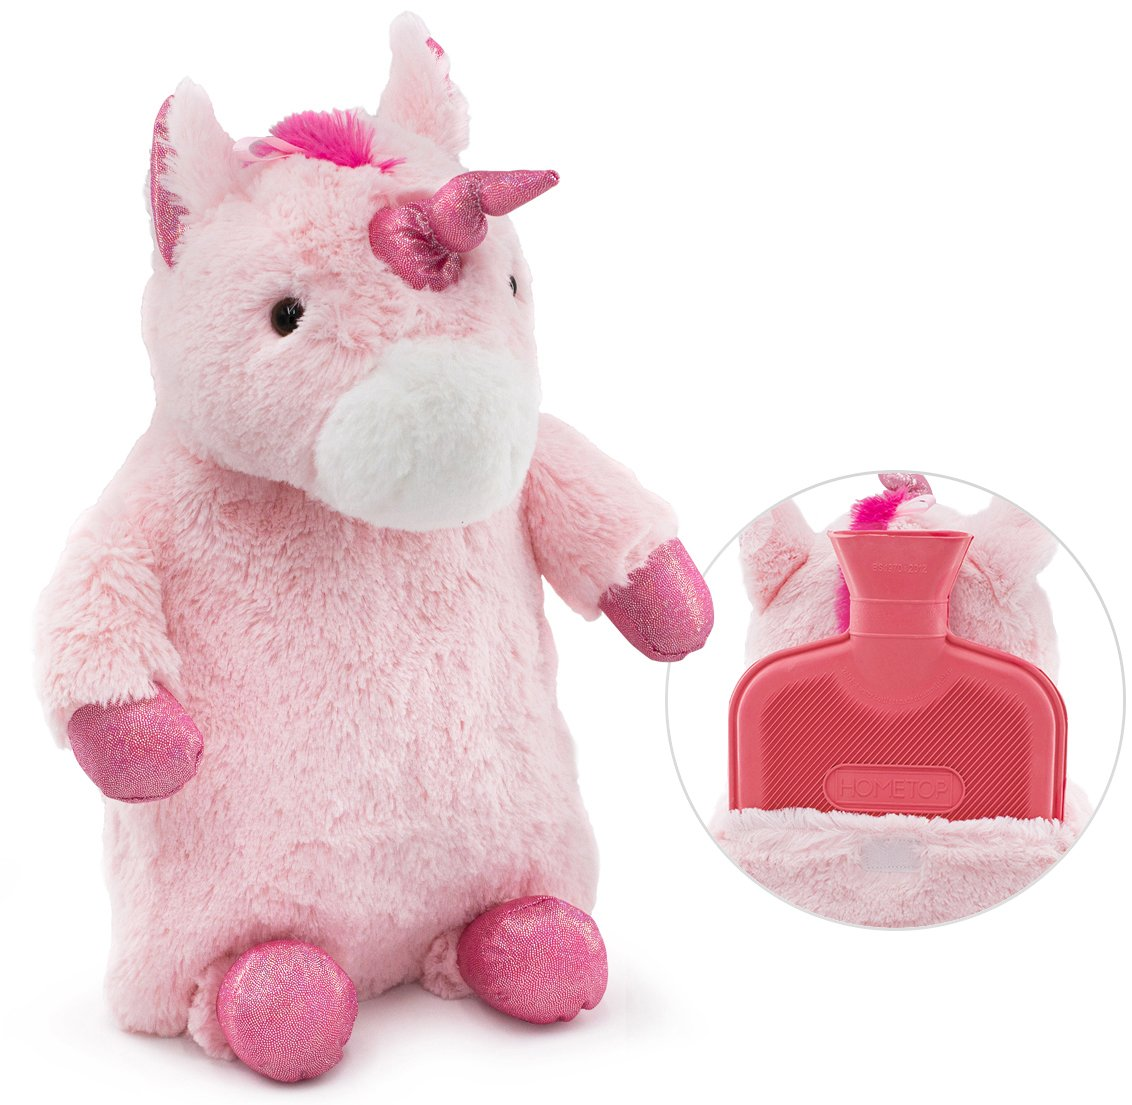 HomeTop Premium Classic Rubber Hot Water Bottle with Cute Unicorn Cover (1L, Pink)